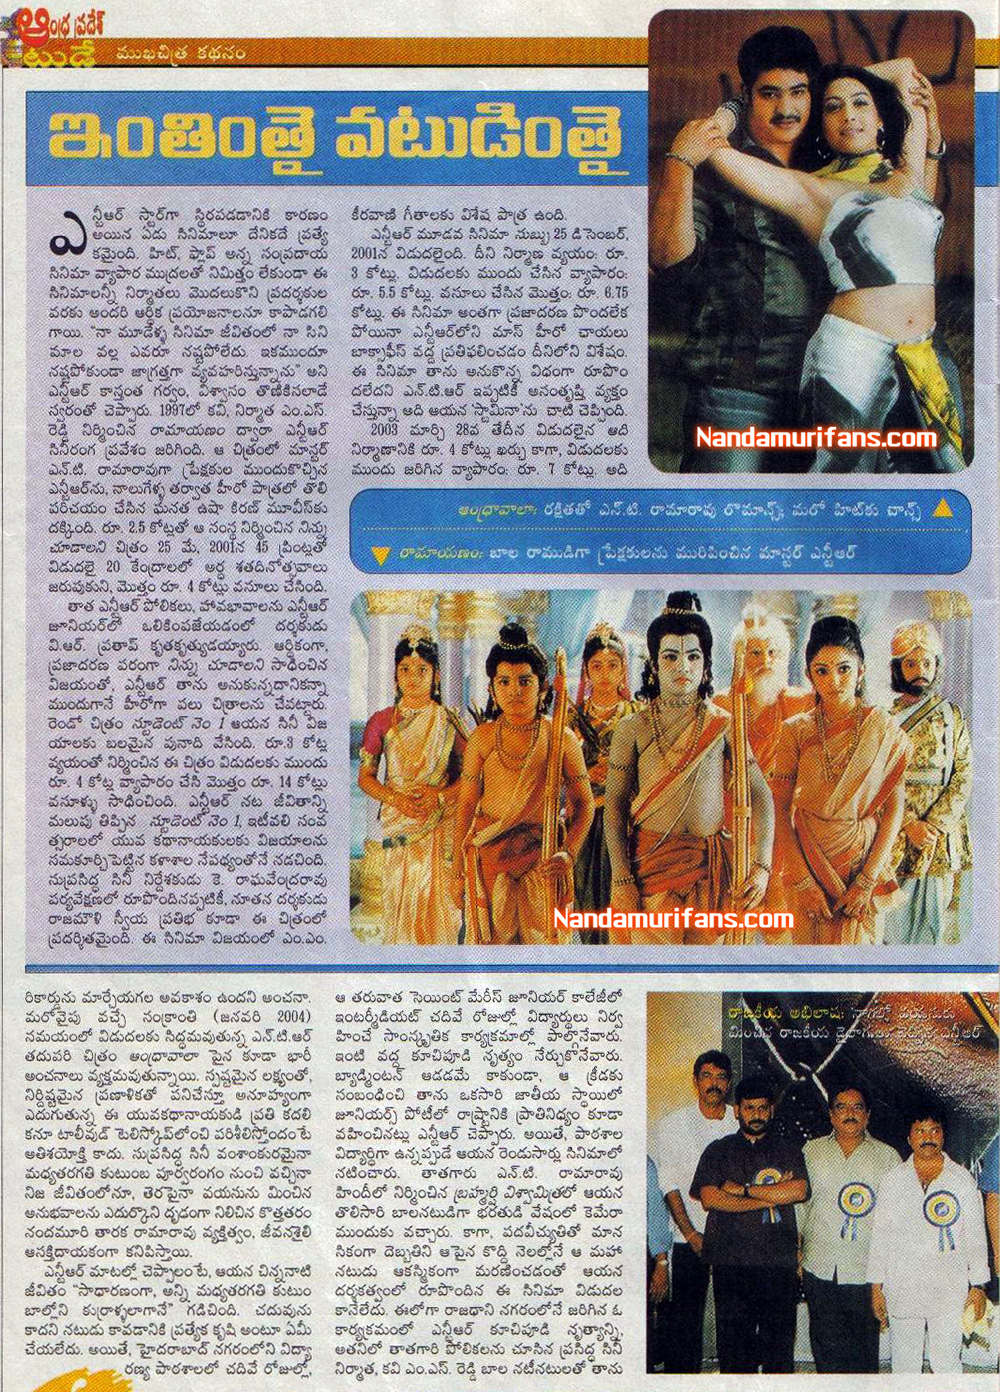 Indiatoday mainicle on NTR Jr. -3